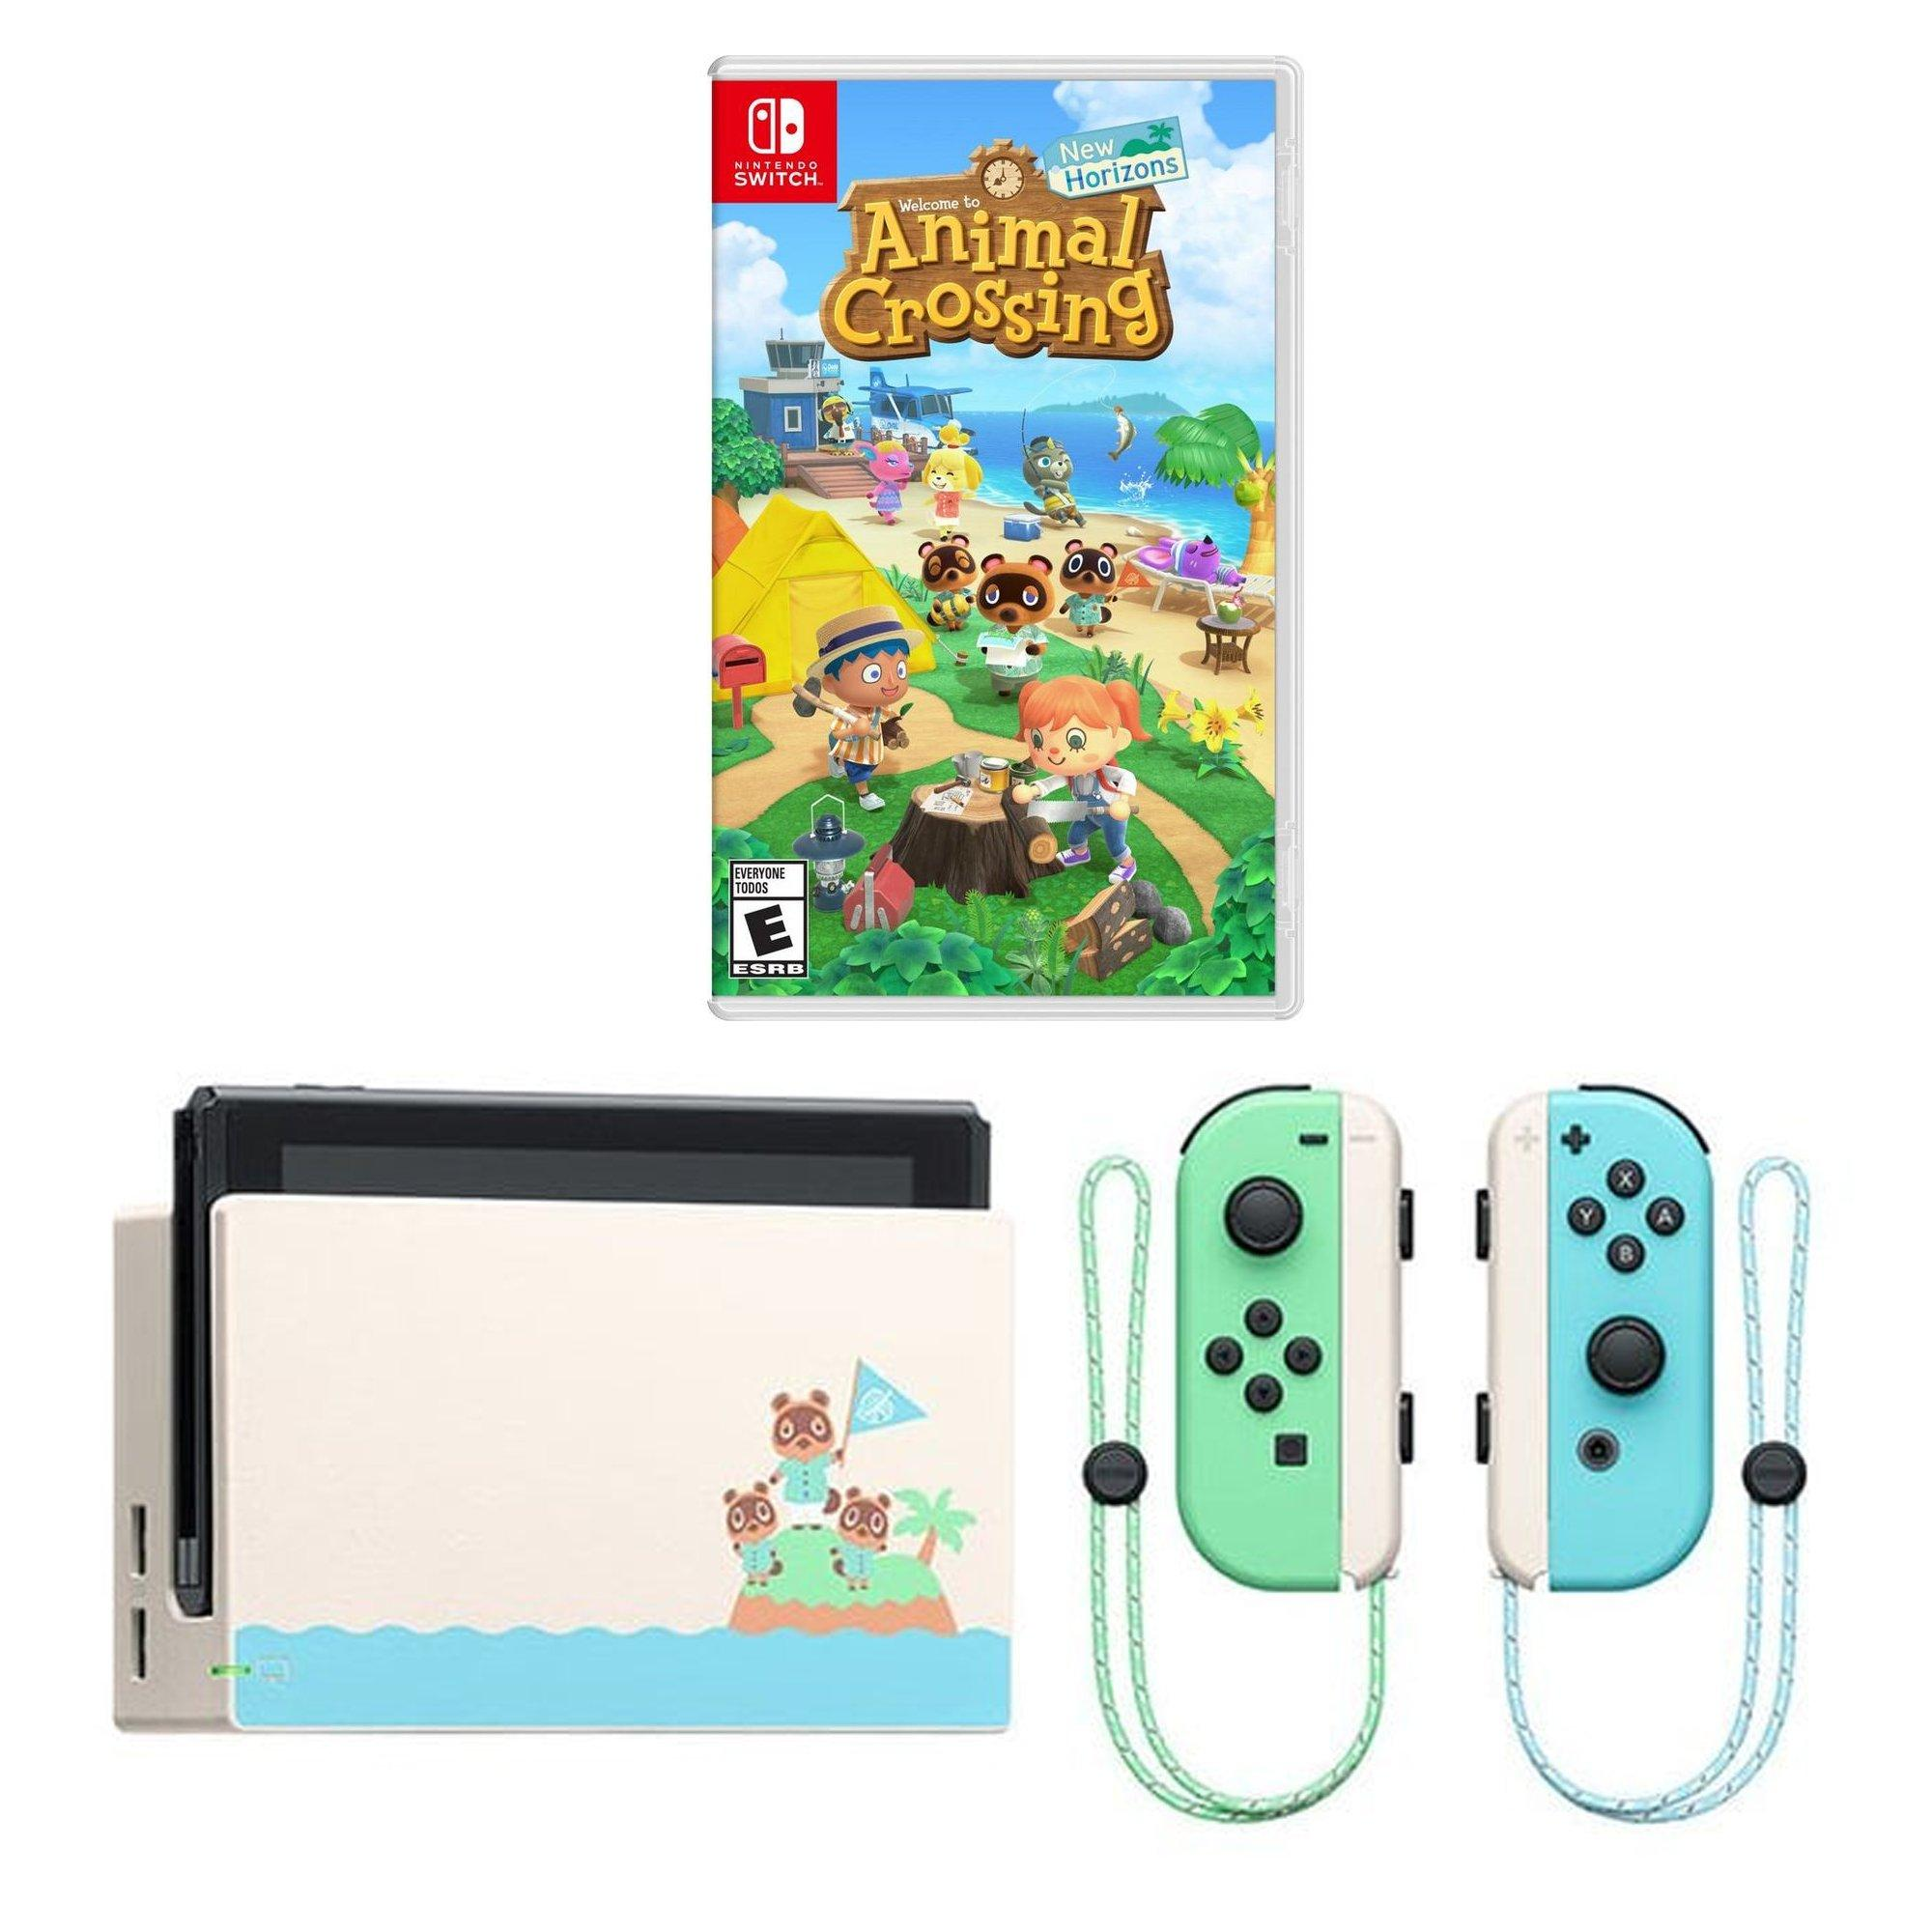 Nintendo Switch Animal Crossing New Horizons Edition With Digital Animal Crossing New Horizons Bundle Nintendo Switch Gamestop